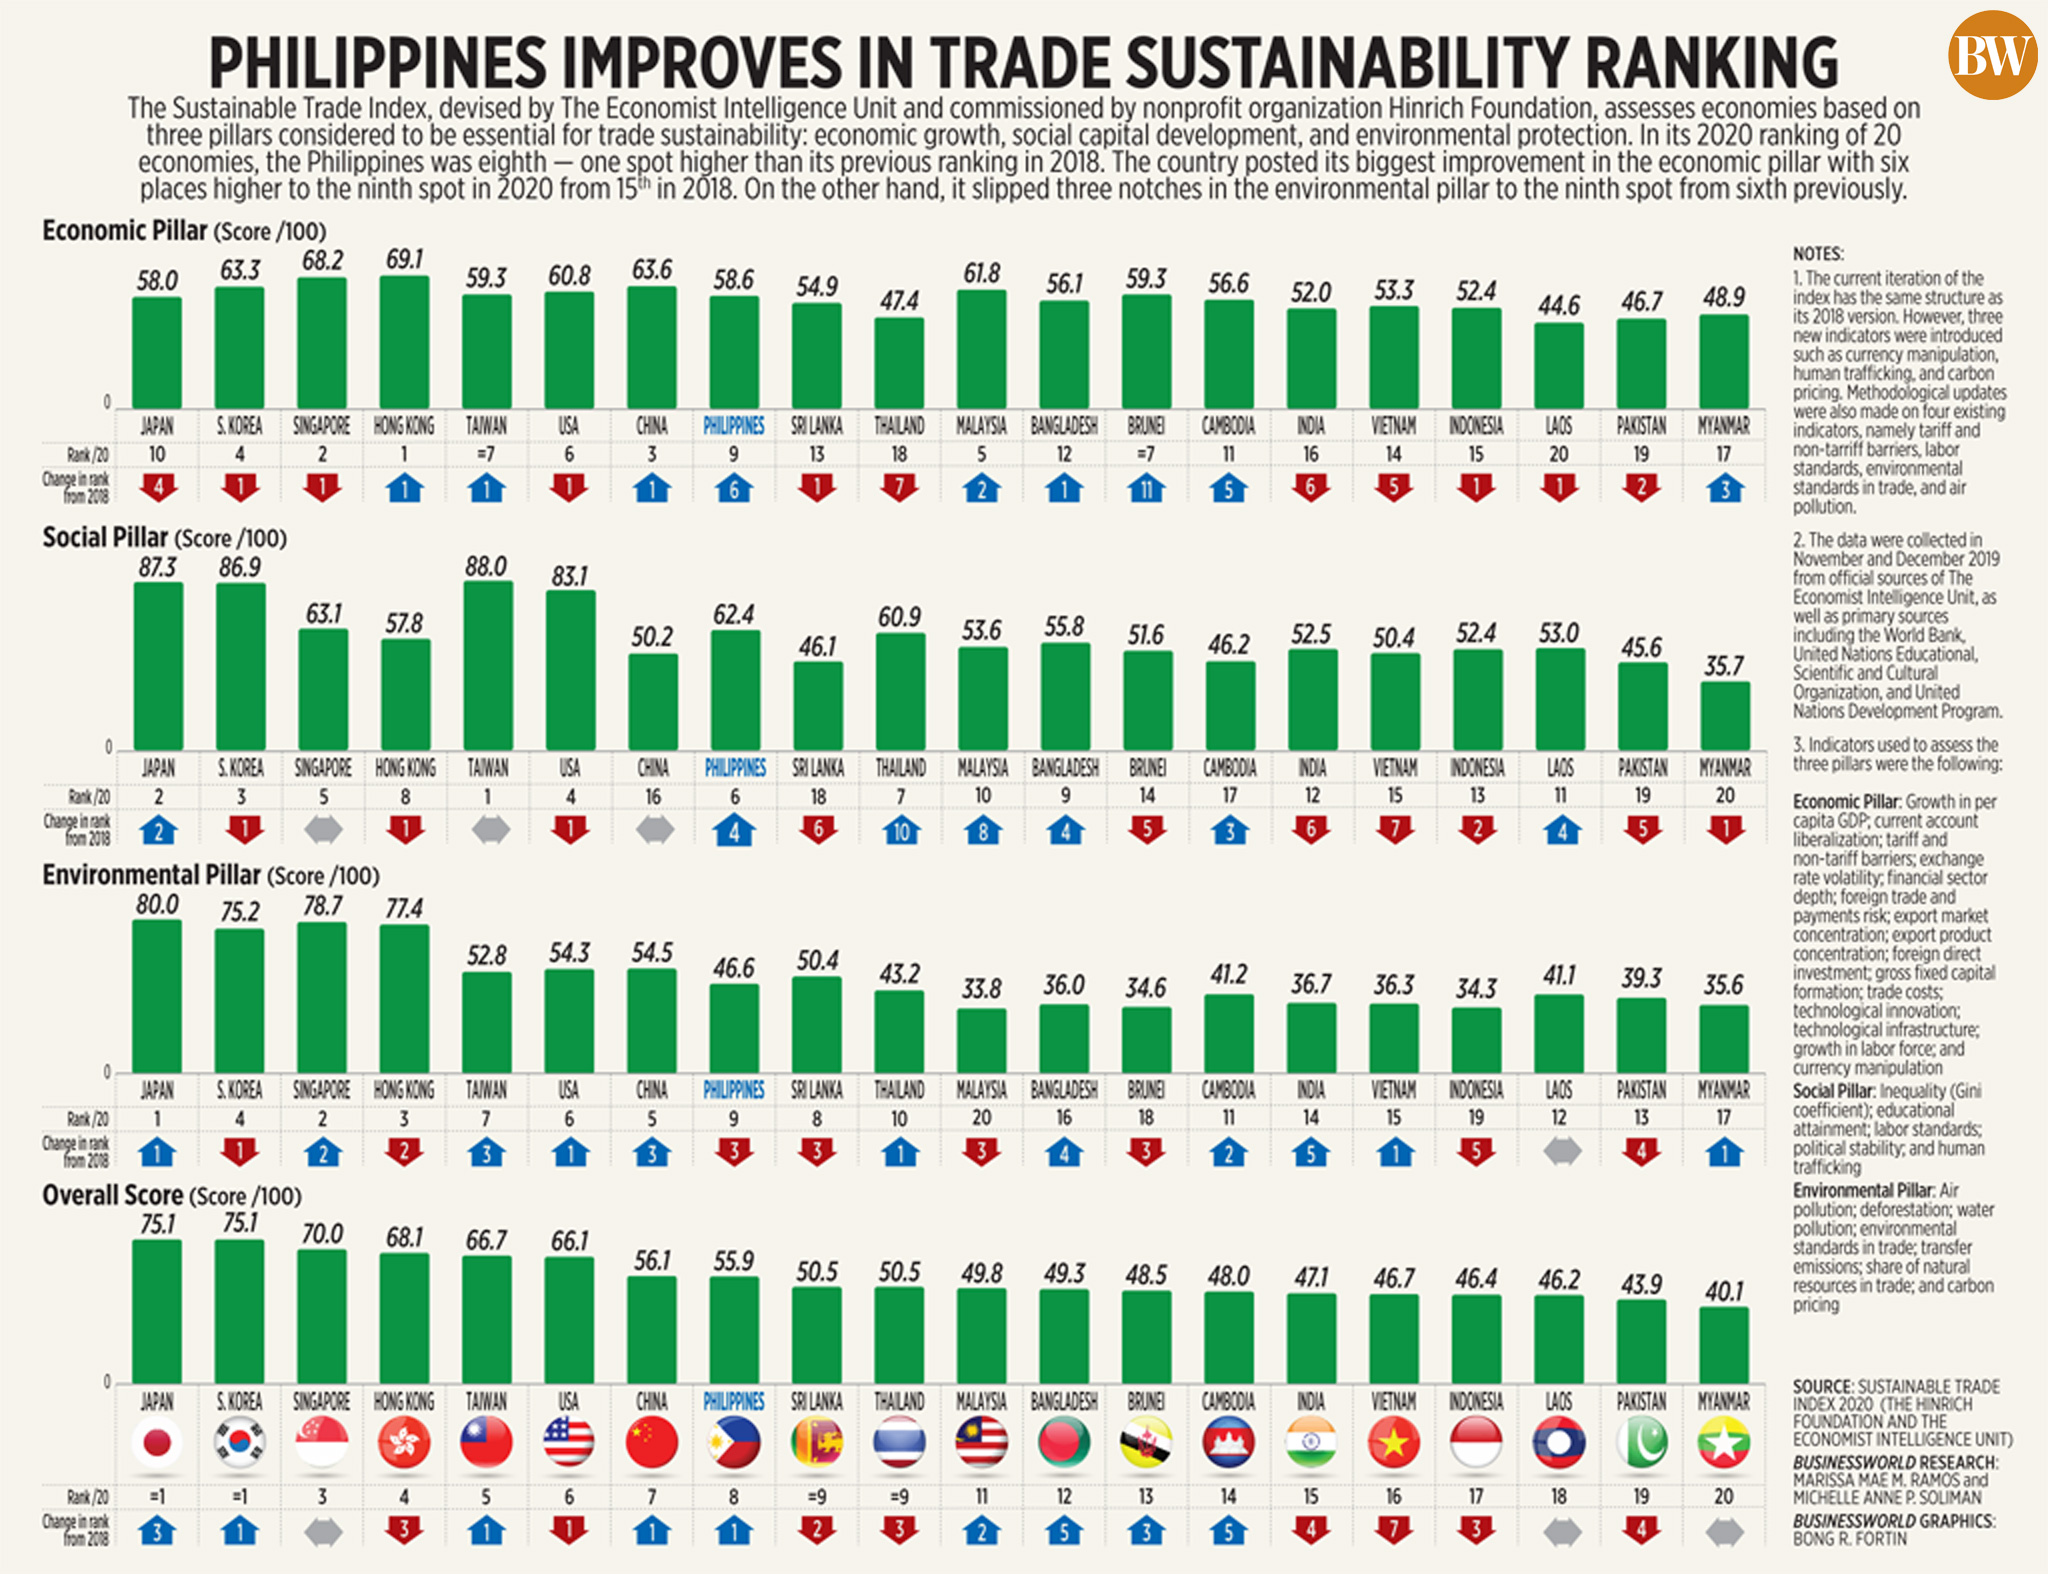 50535819748 942209706a o - Philippines moves up in sustainable trade index